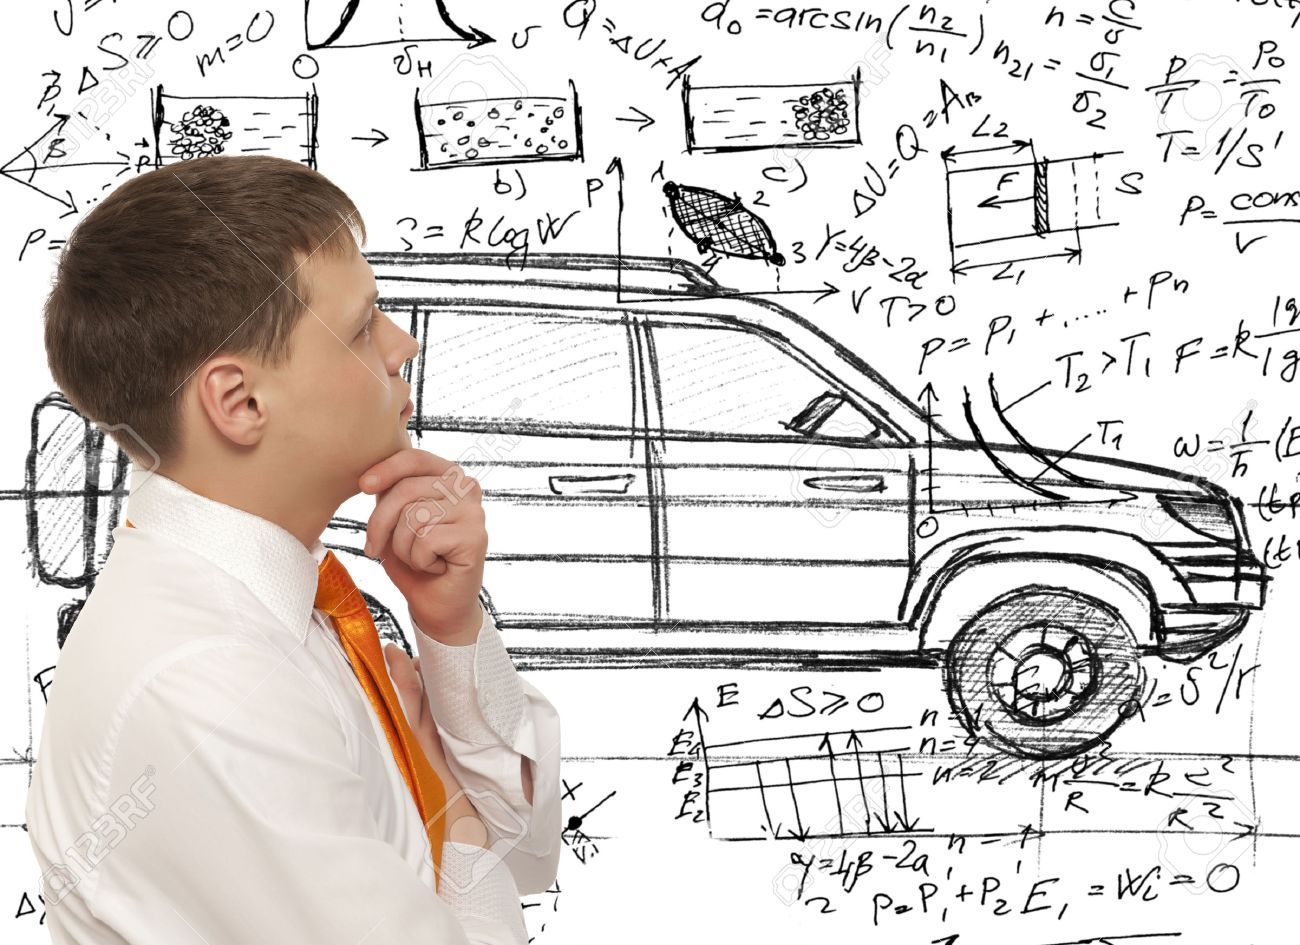 Car designer inventor. Photo compilation, photo and hand-drawing elements combined - 38119856